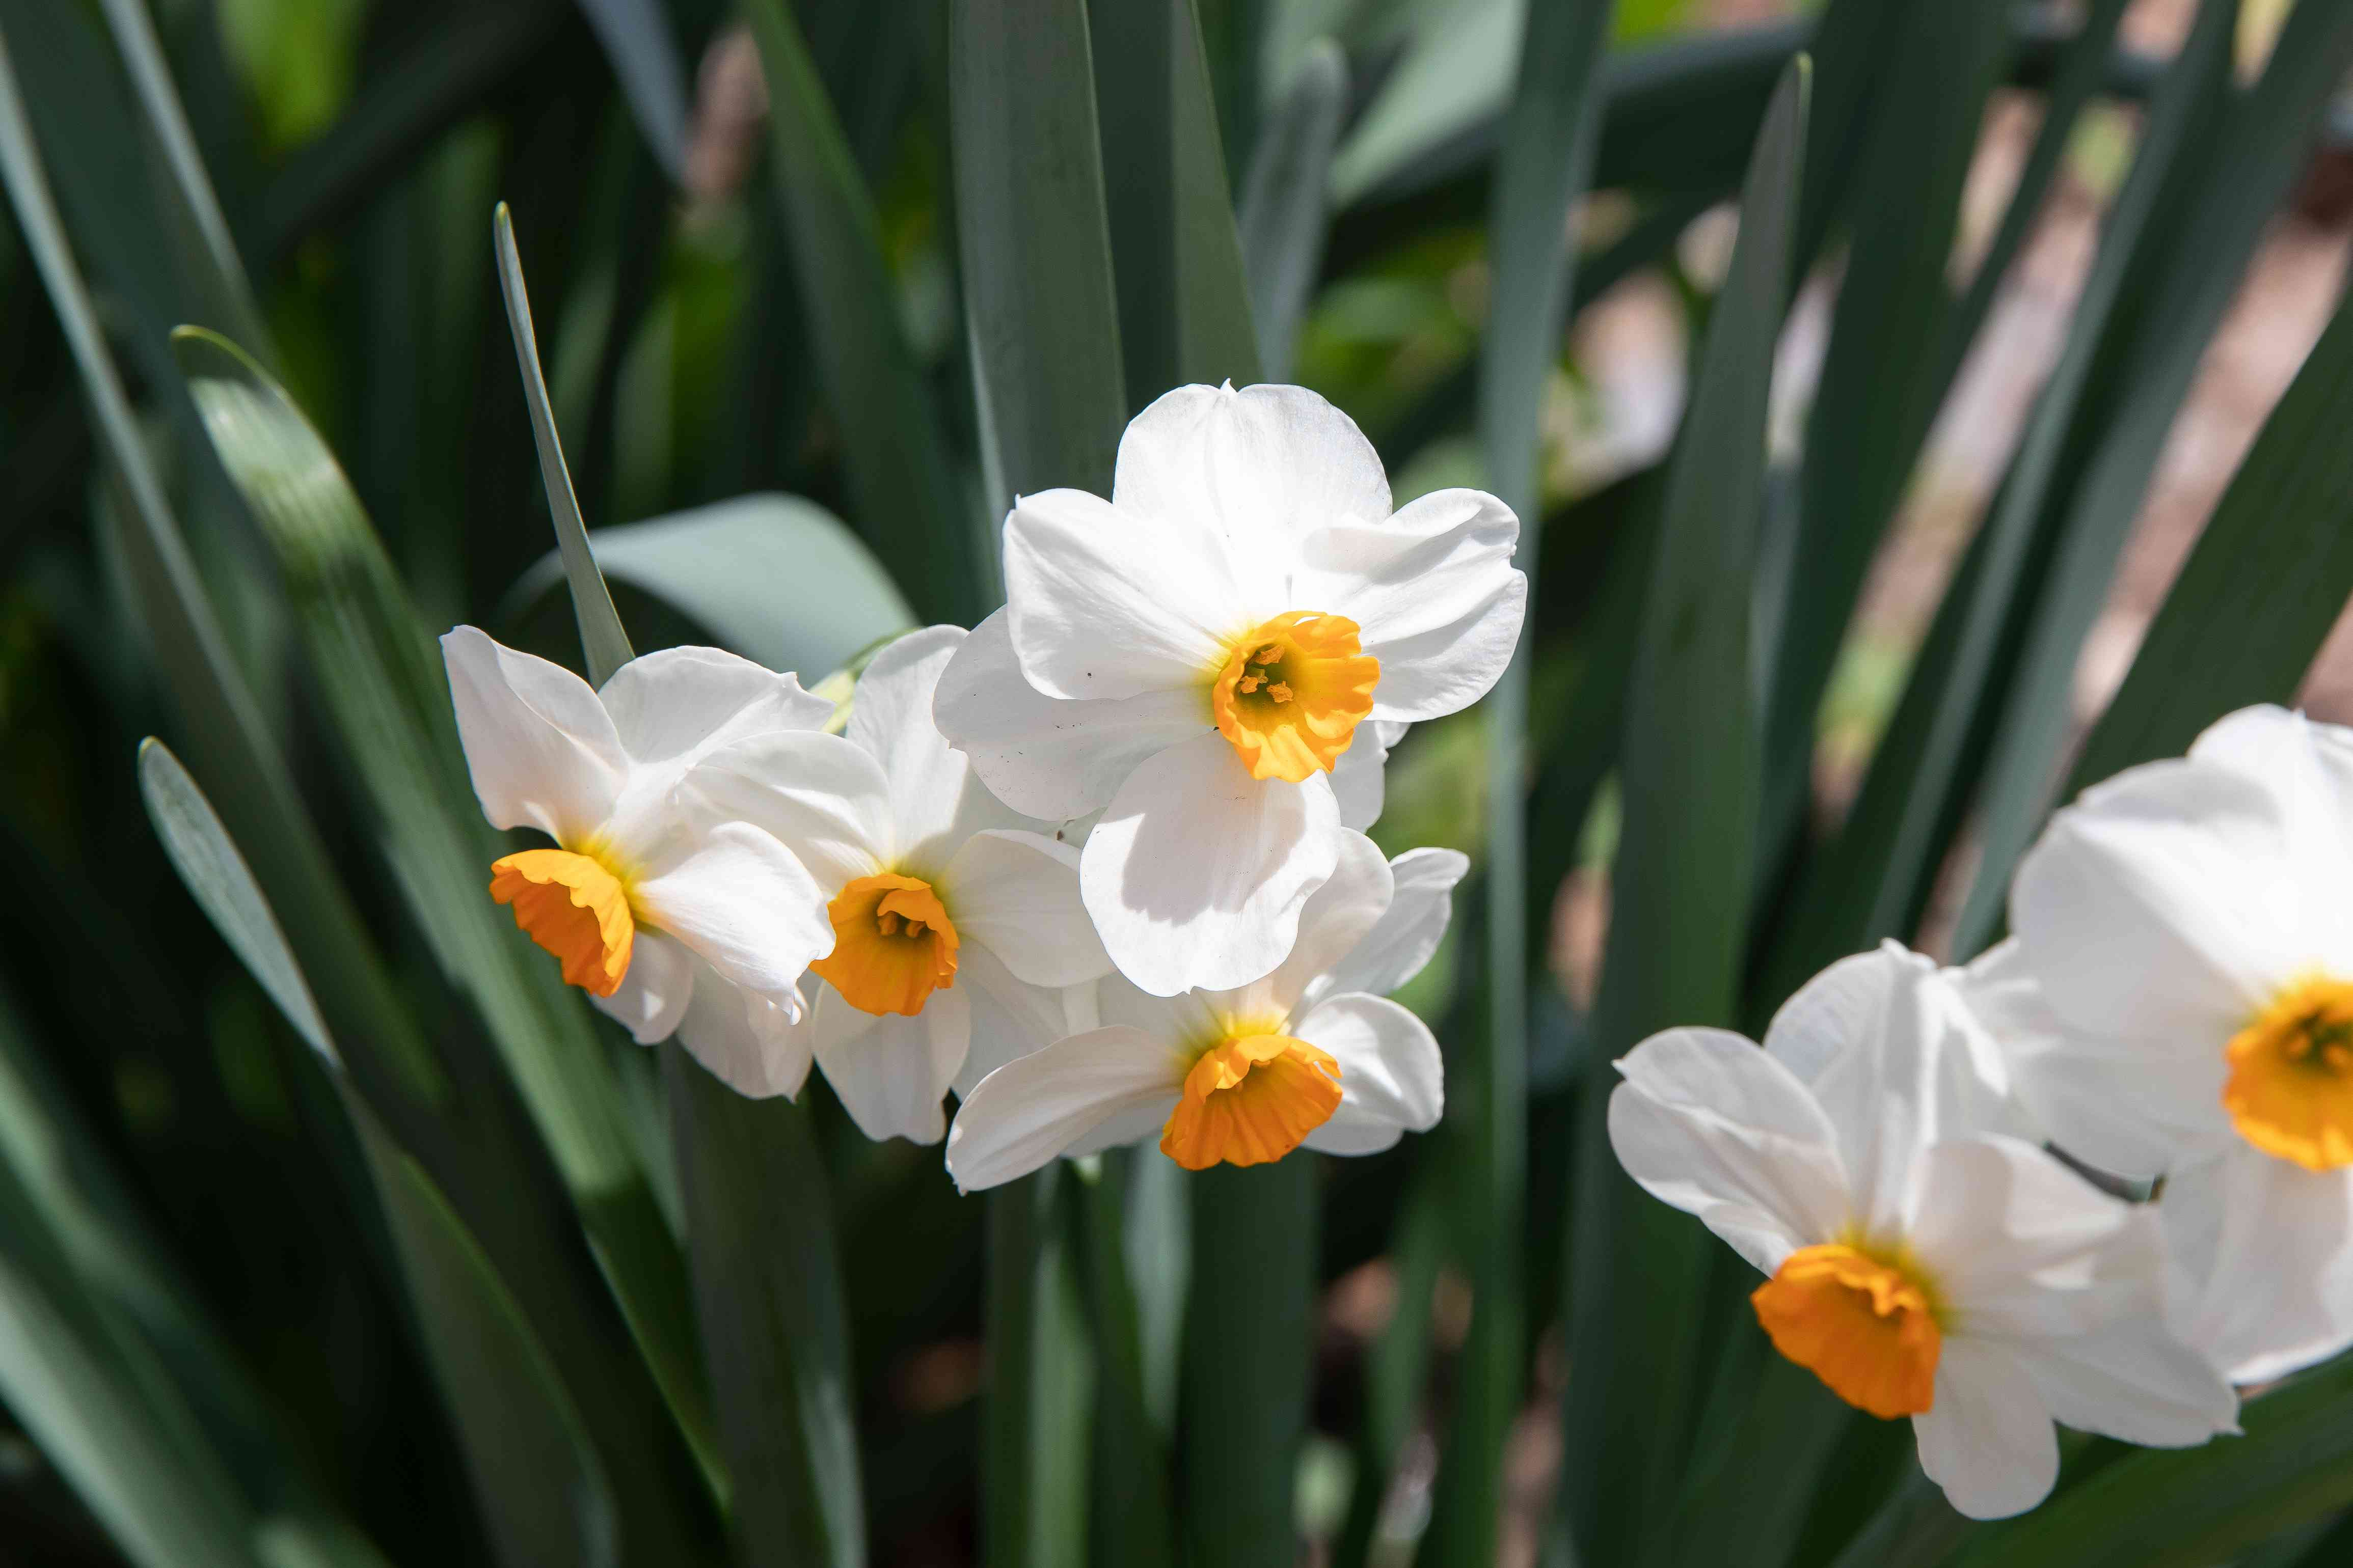 White daffodil flowers with yellow centers surrounded by long leaves in sunlight